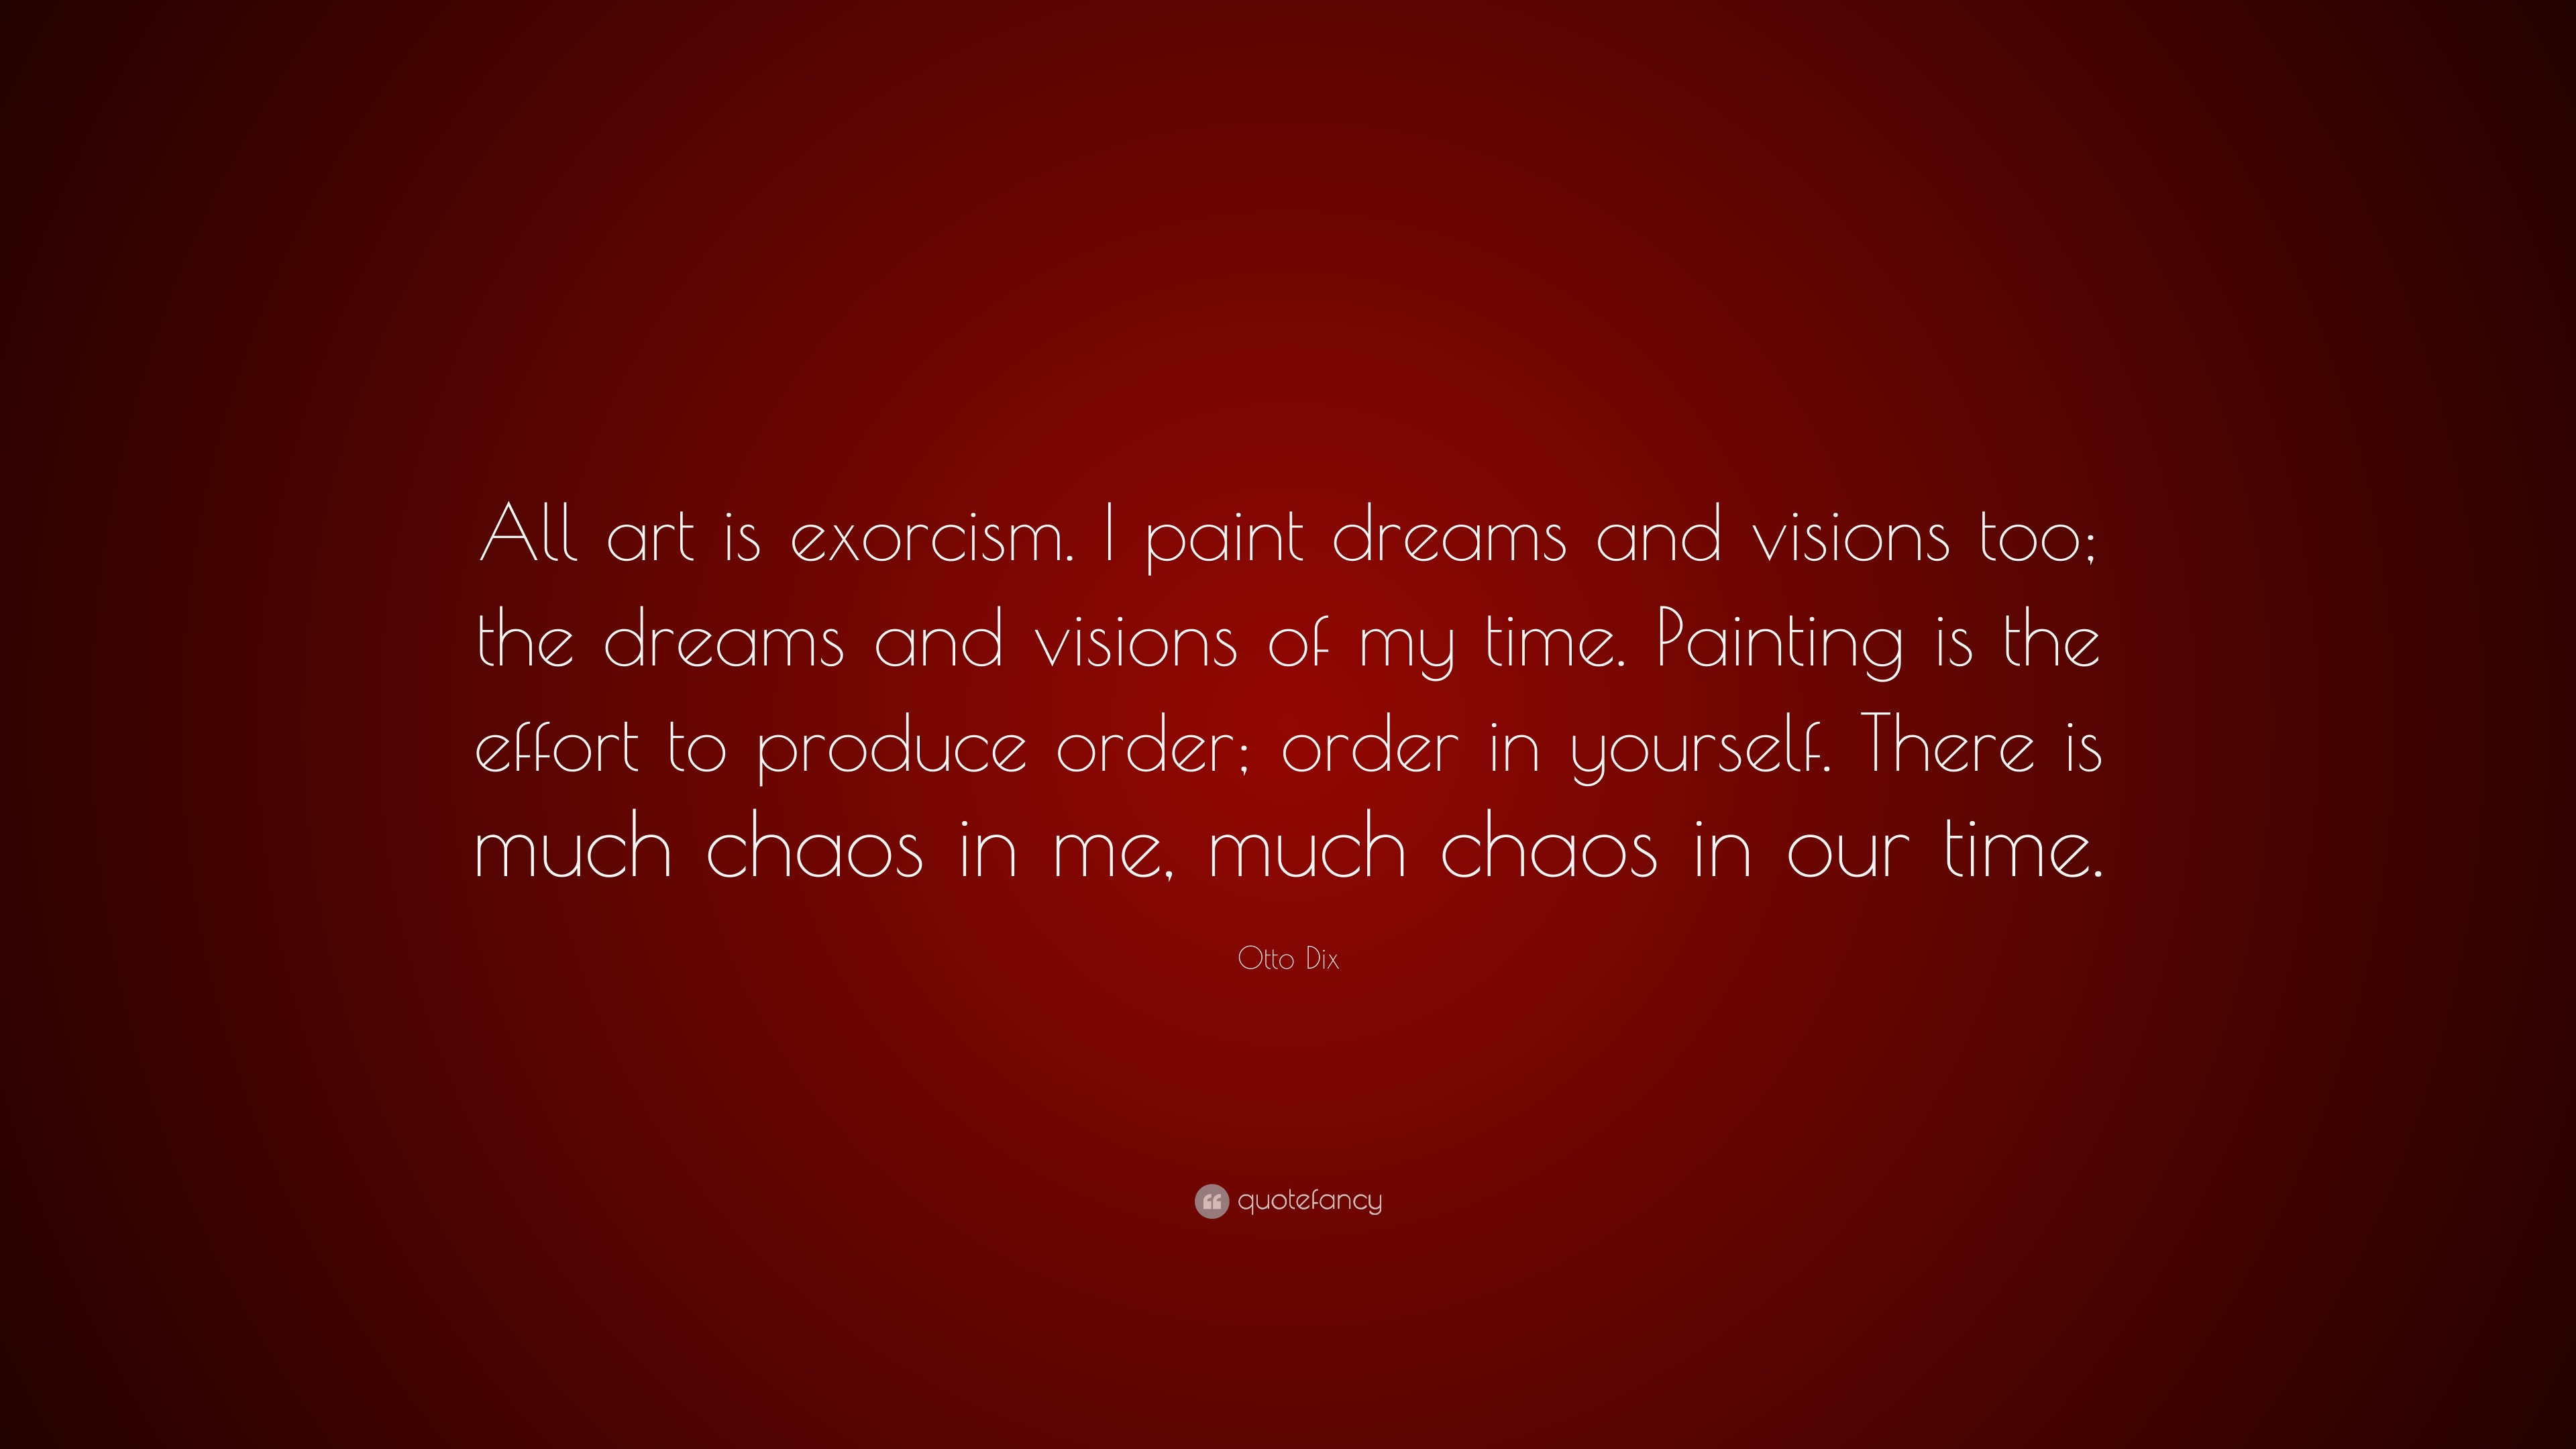 Otto dix quote all art is exorcism i paint dreams and visions too otto dix quote all art is exorcism i paint dreams and visions too solutioingenieria Gallery